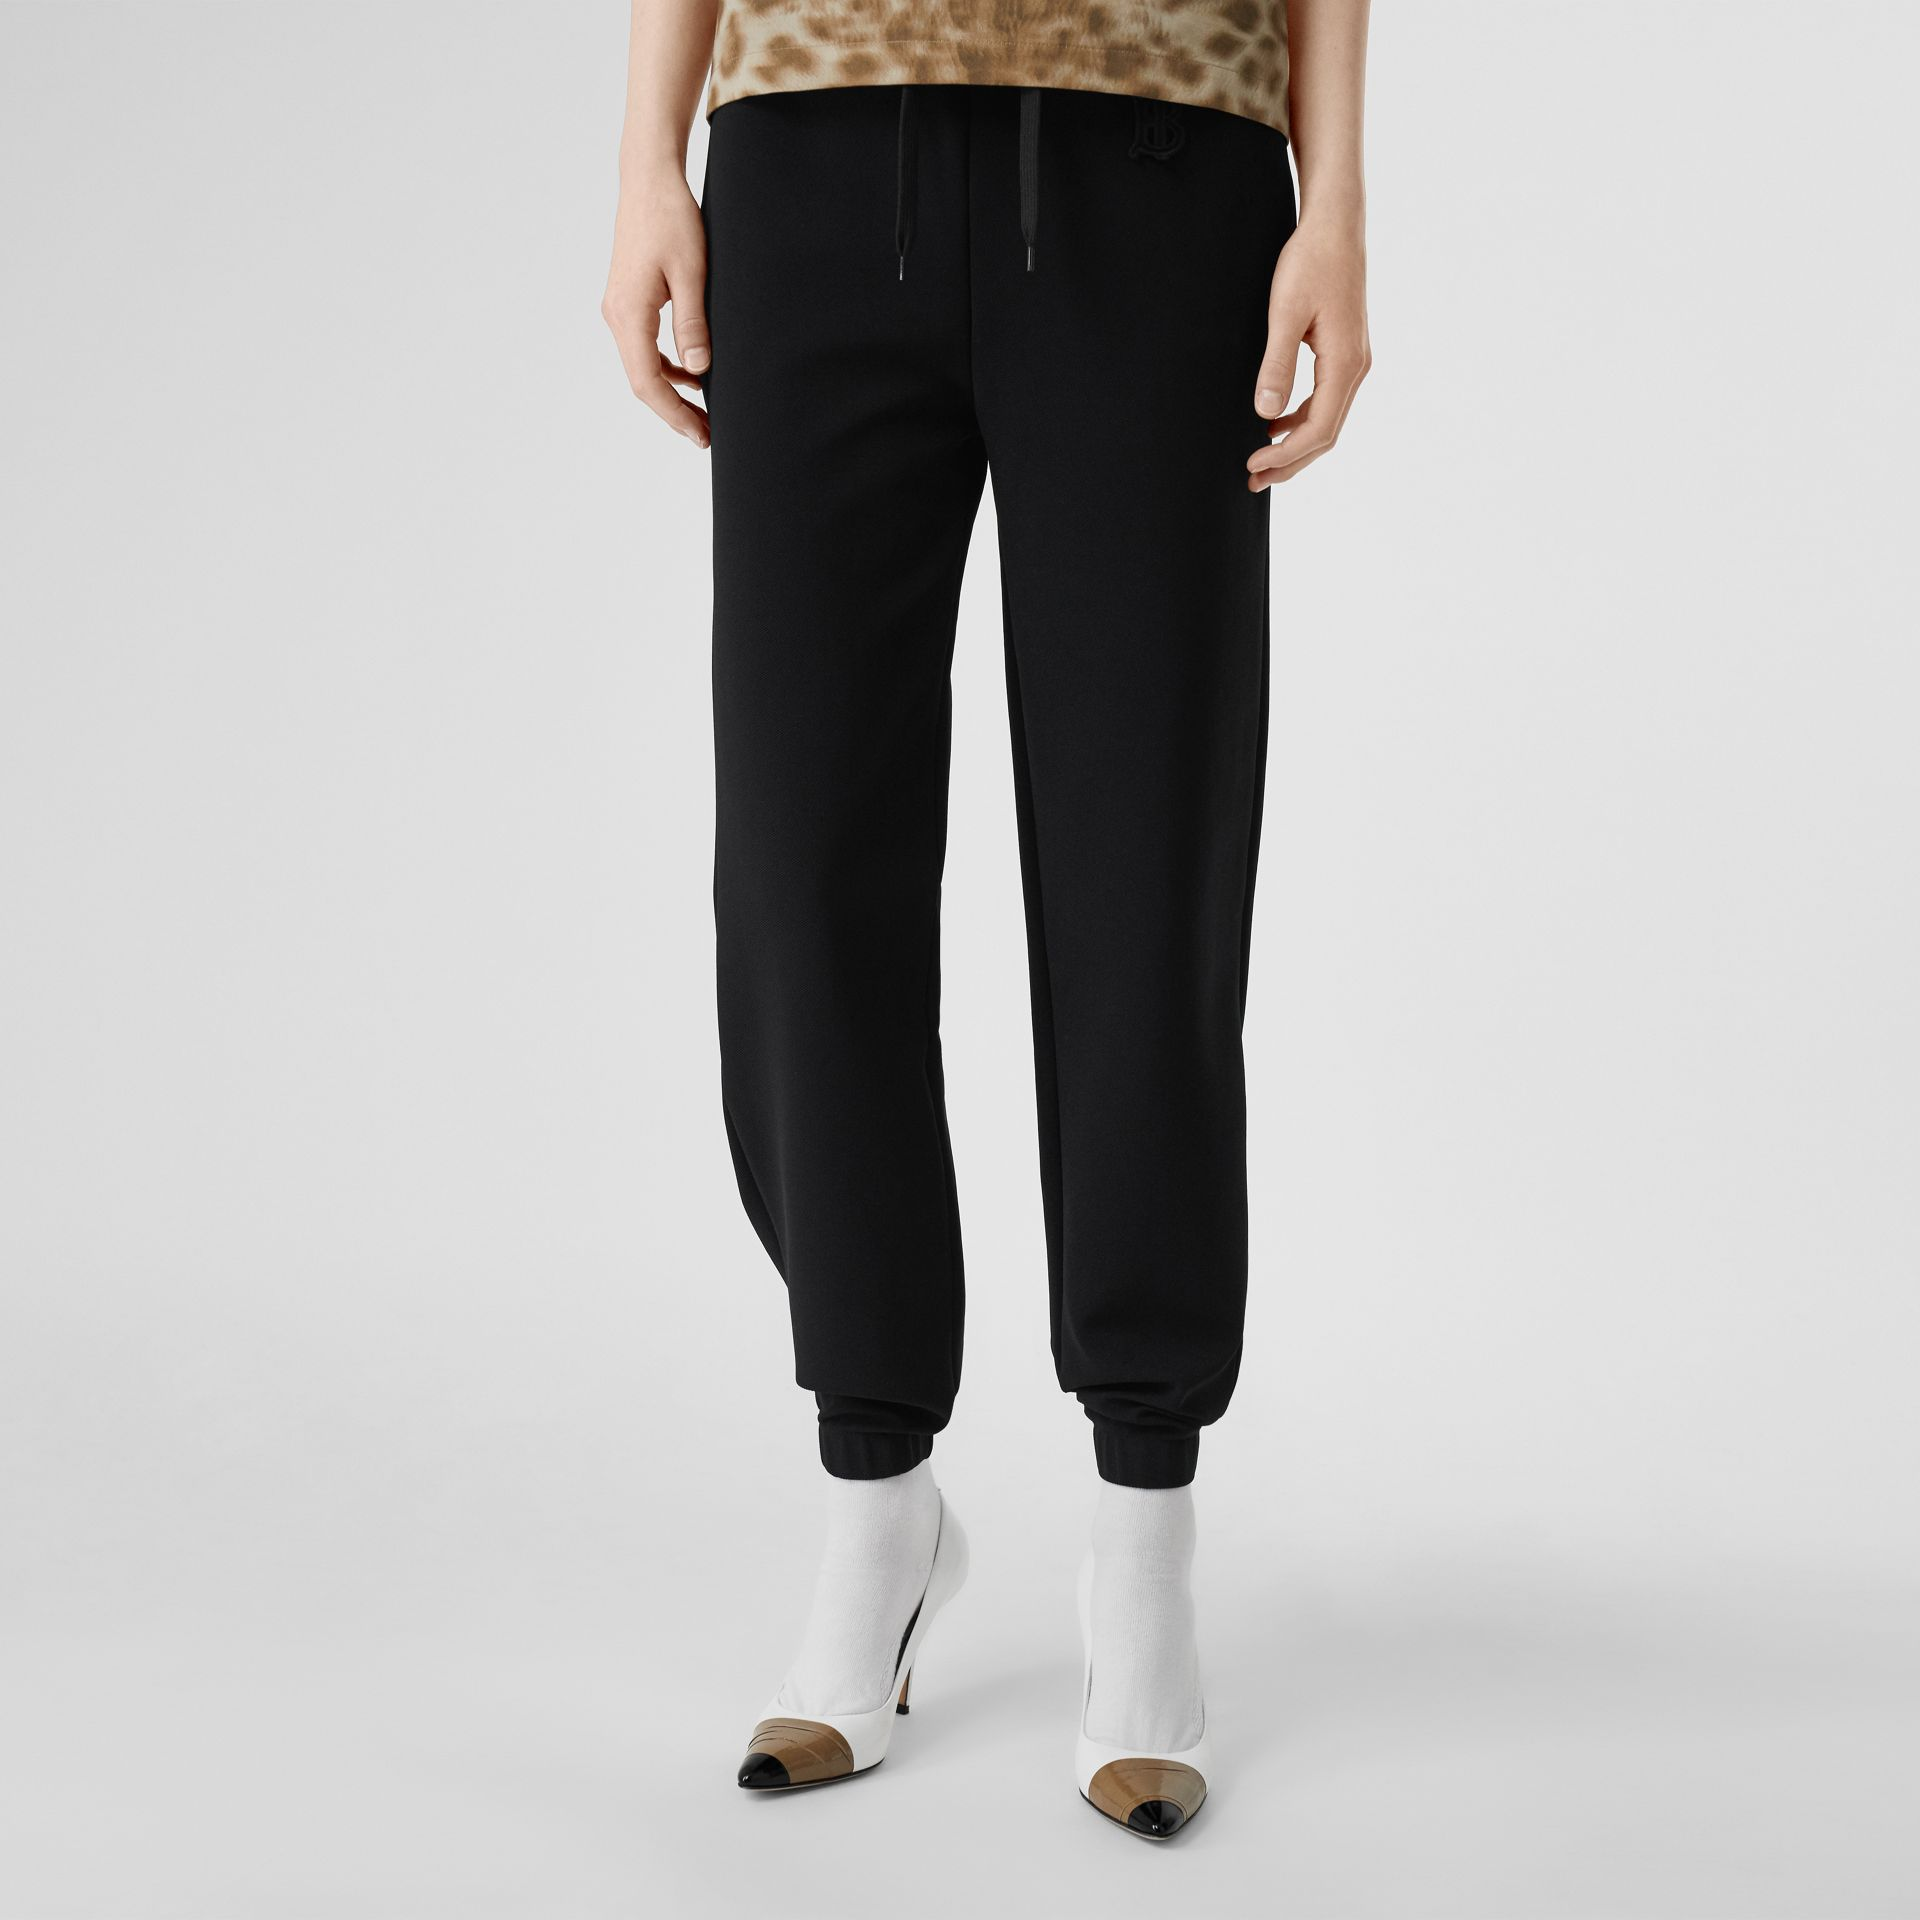 Monogram Motif Technical Trackpants in Black - Women | Burberry - gallery image 4